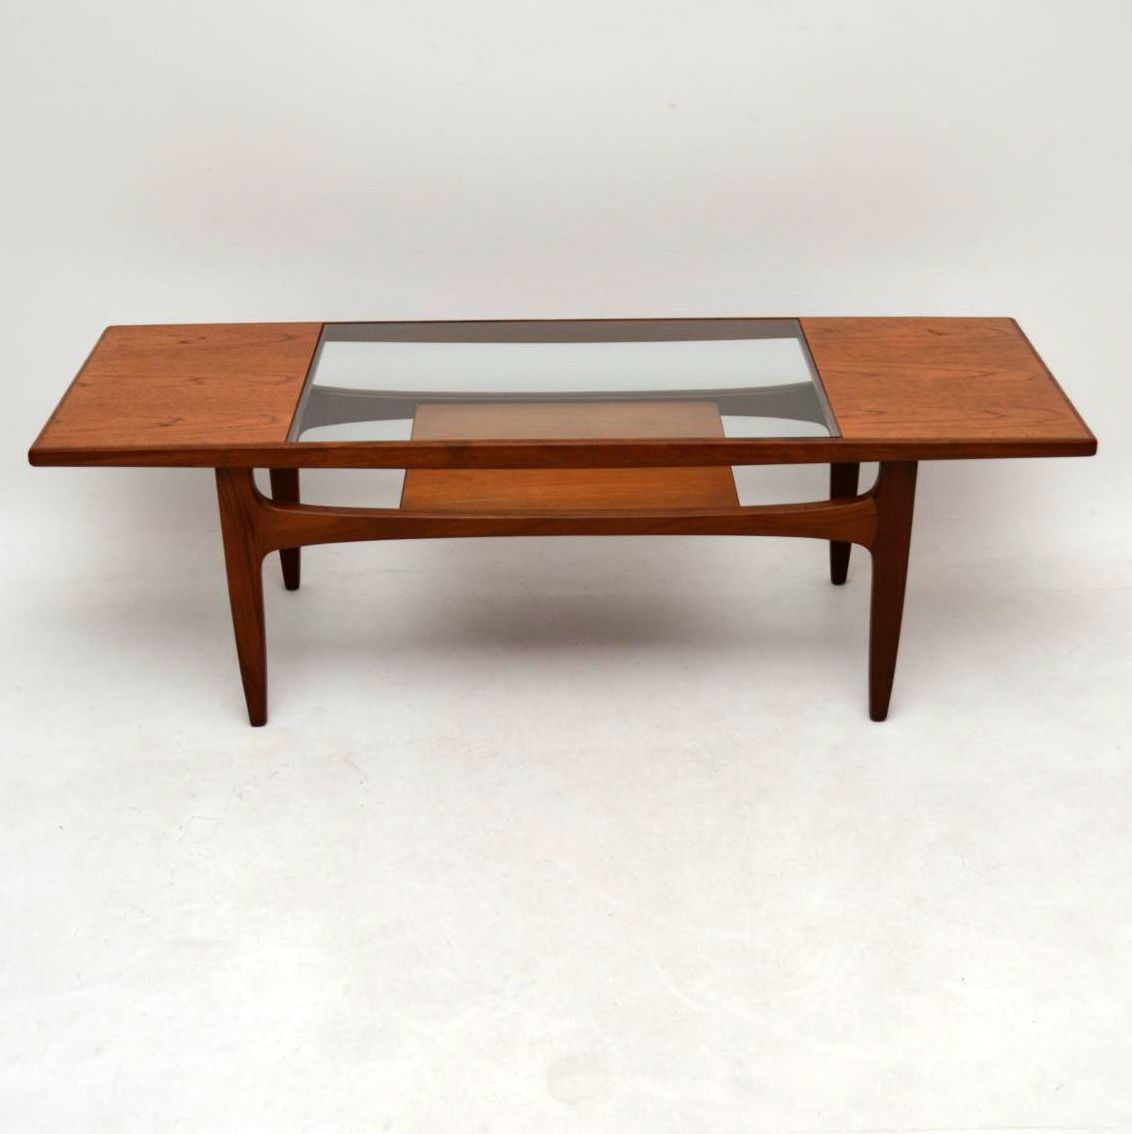 Retro Teak Coffee Table by G- Plan Vintage 1960's ...